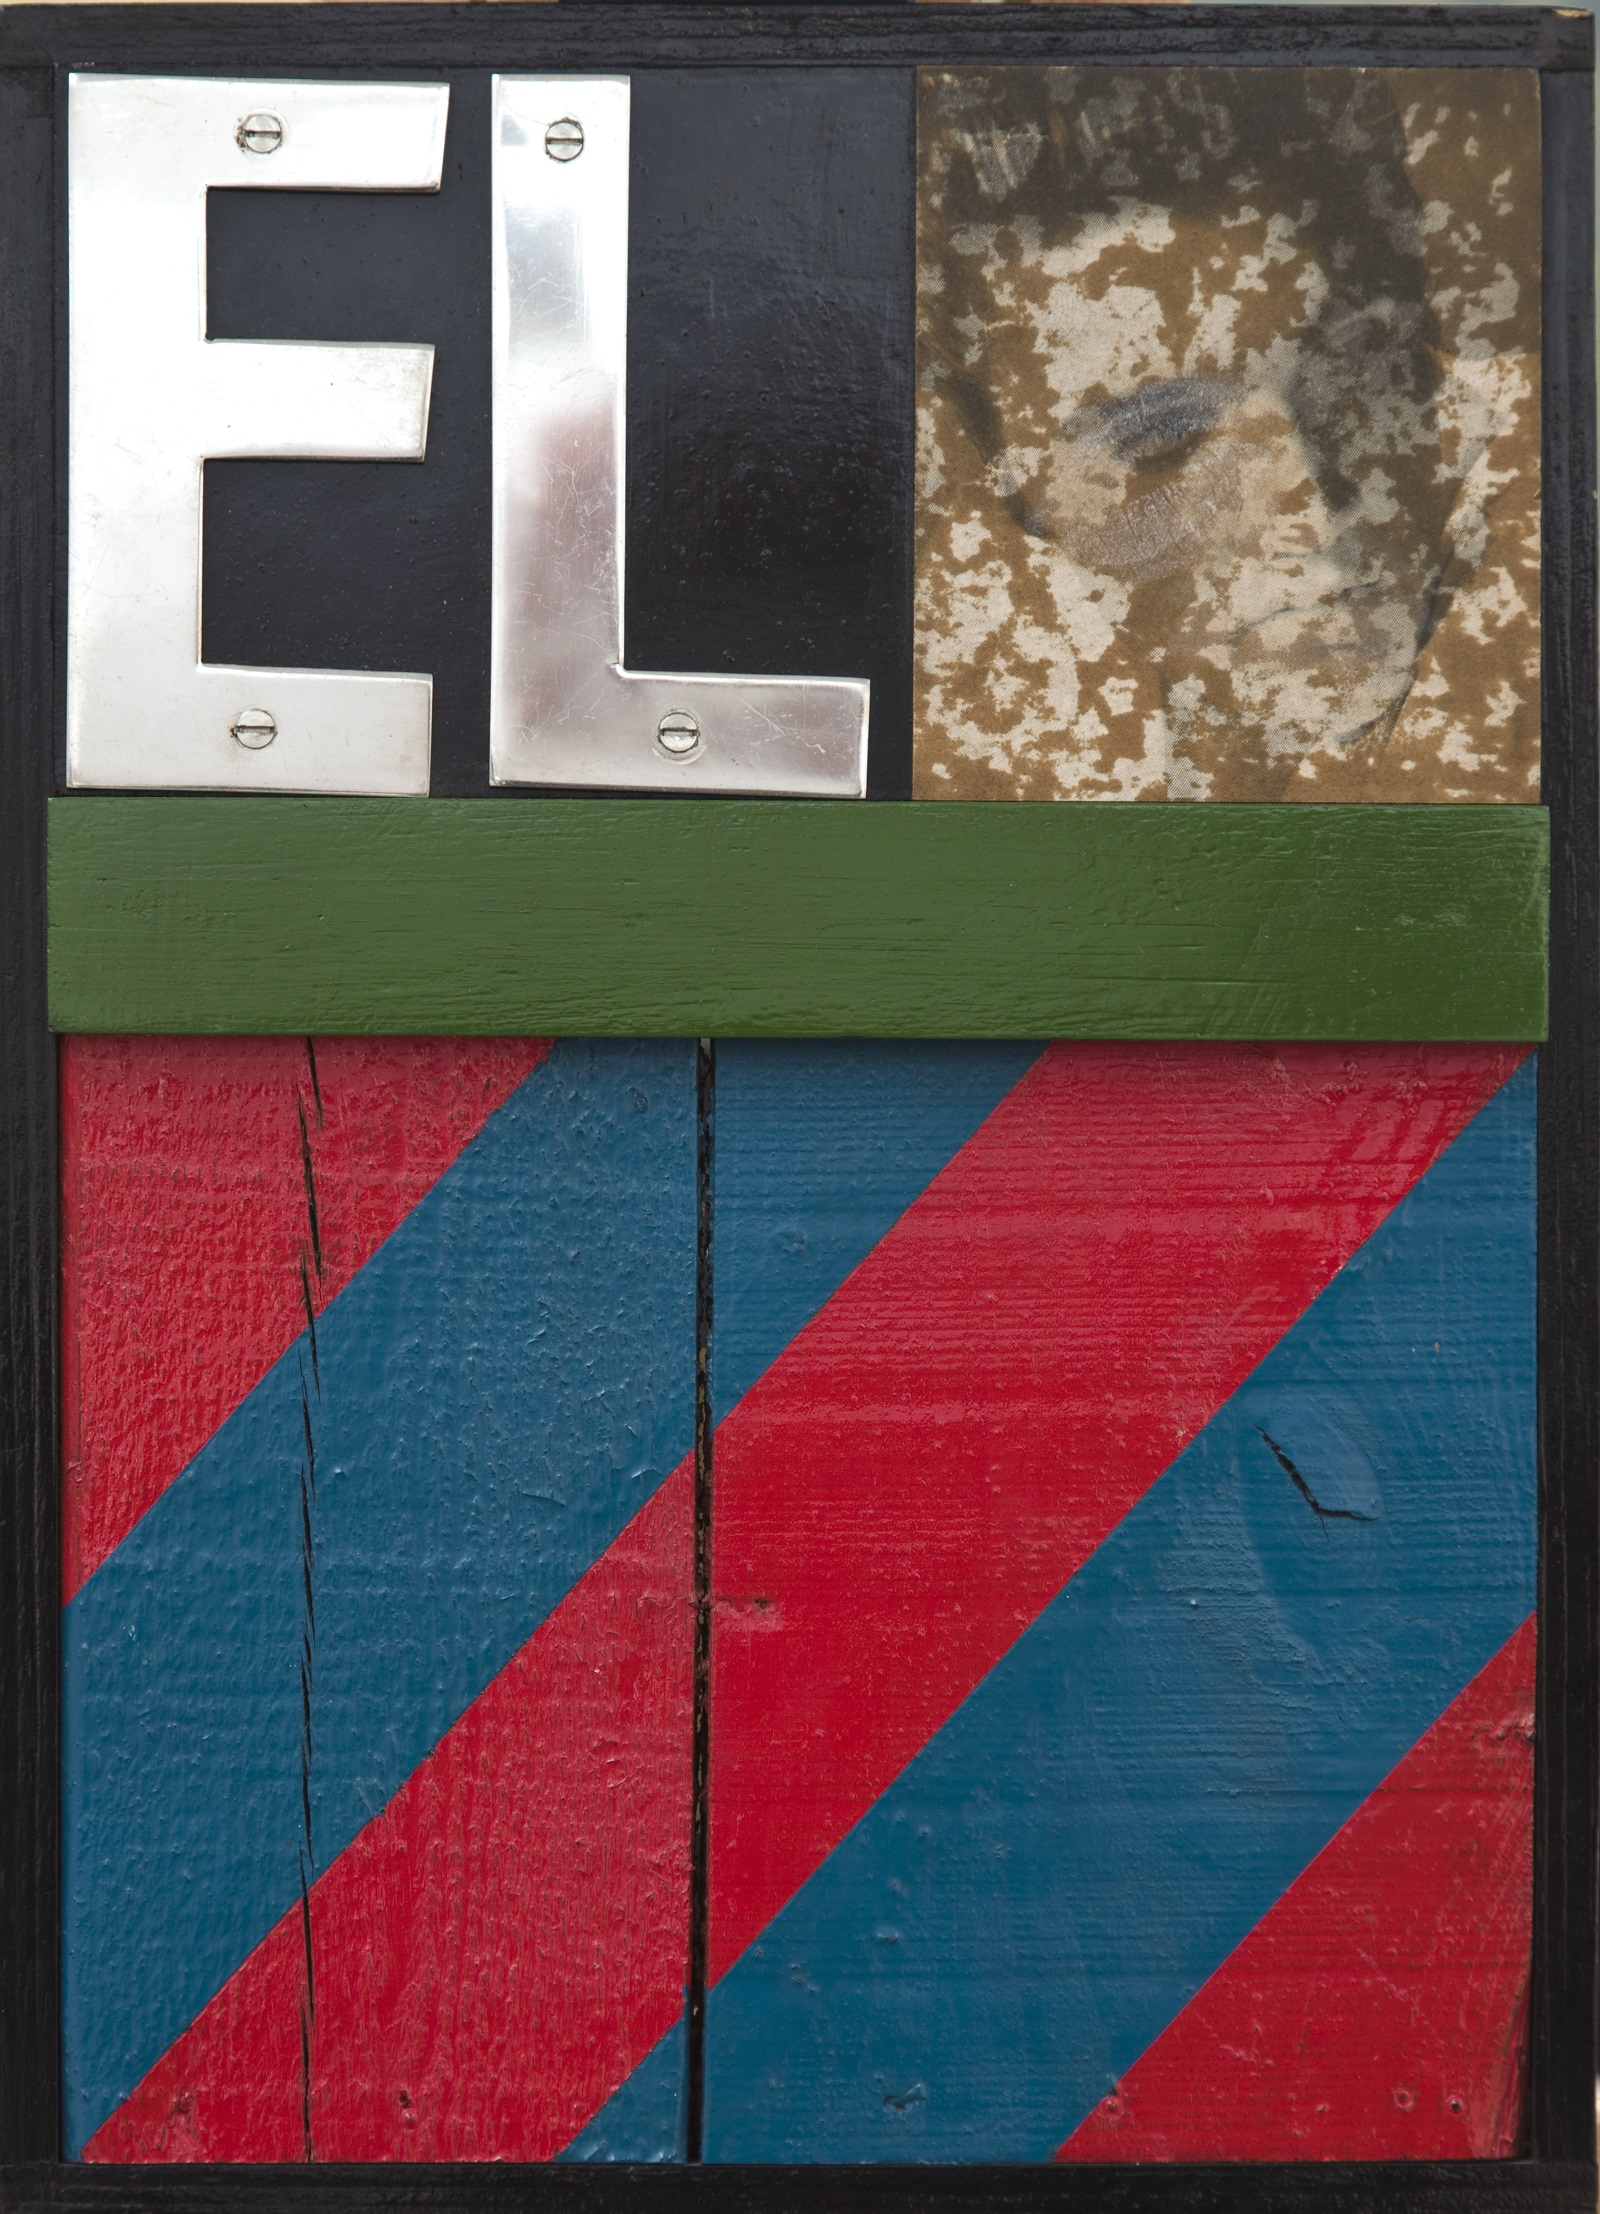 Wooden boards painted with red and blue diagonal stripes oin the lower half. In the top left corner are the letters E and L and in the right corner there is a distressed photograph of Elvis Preslet smeared with lipstick